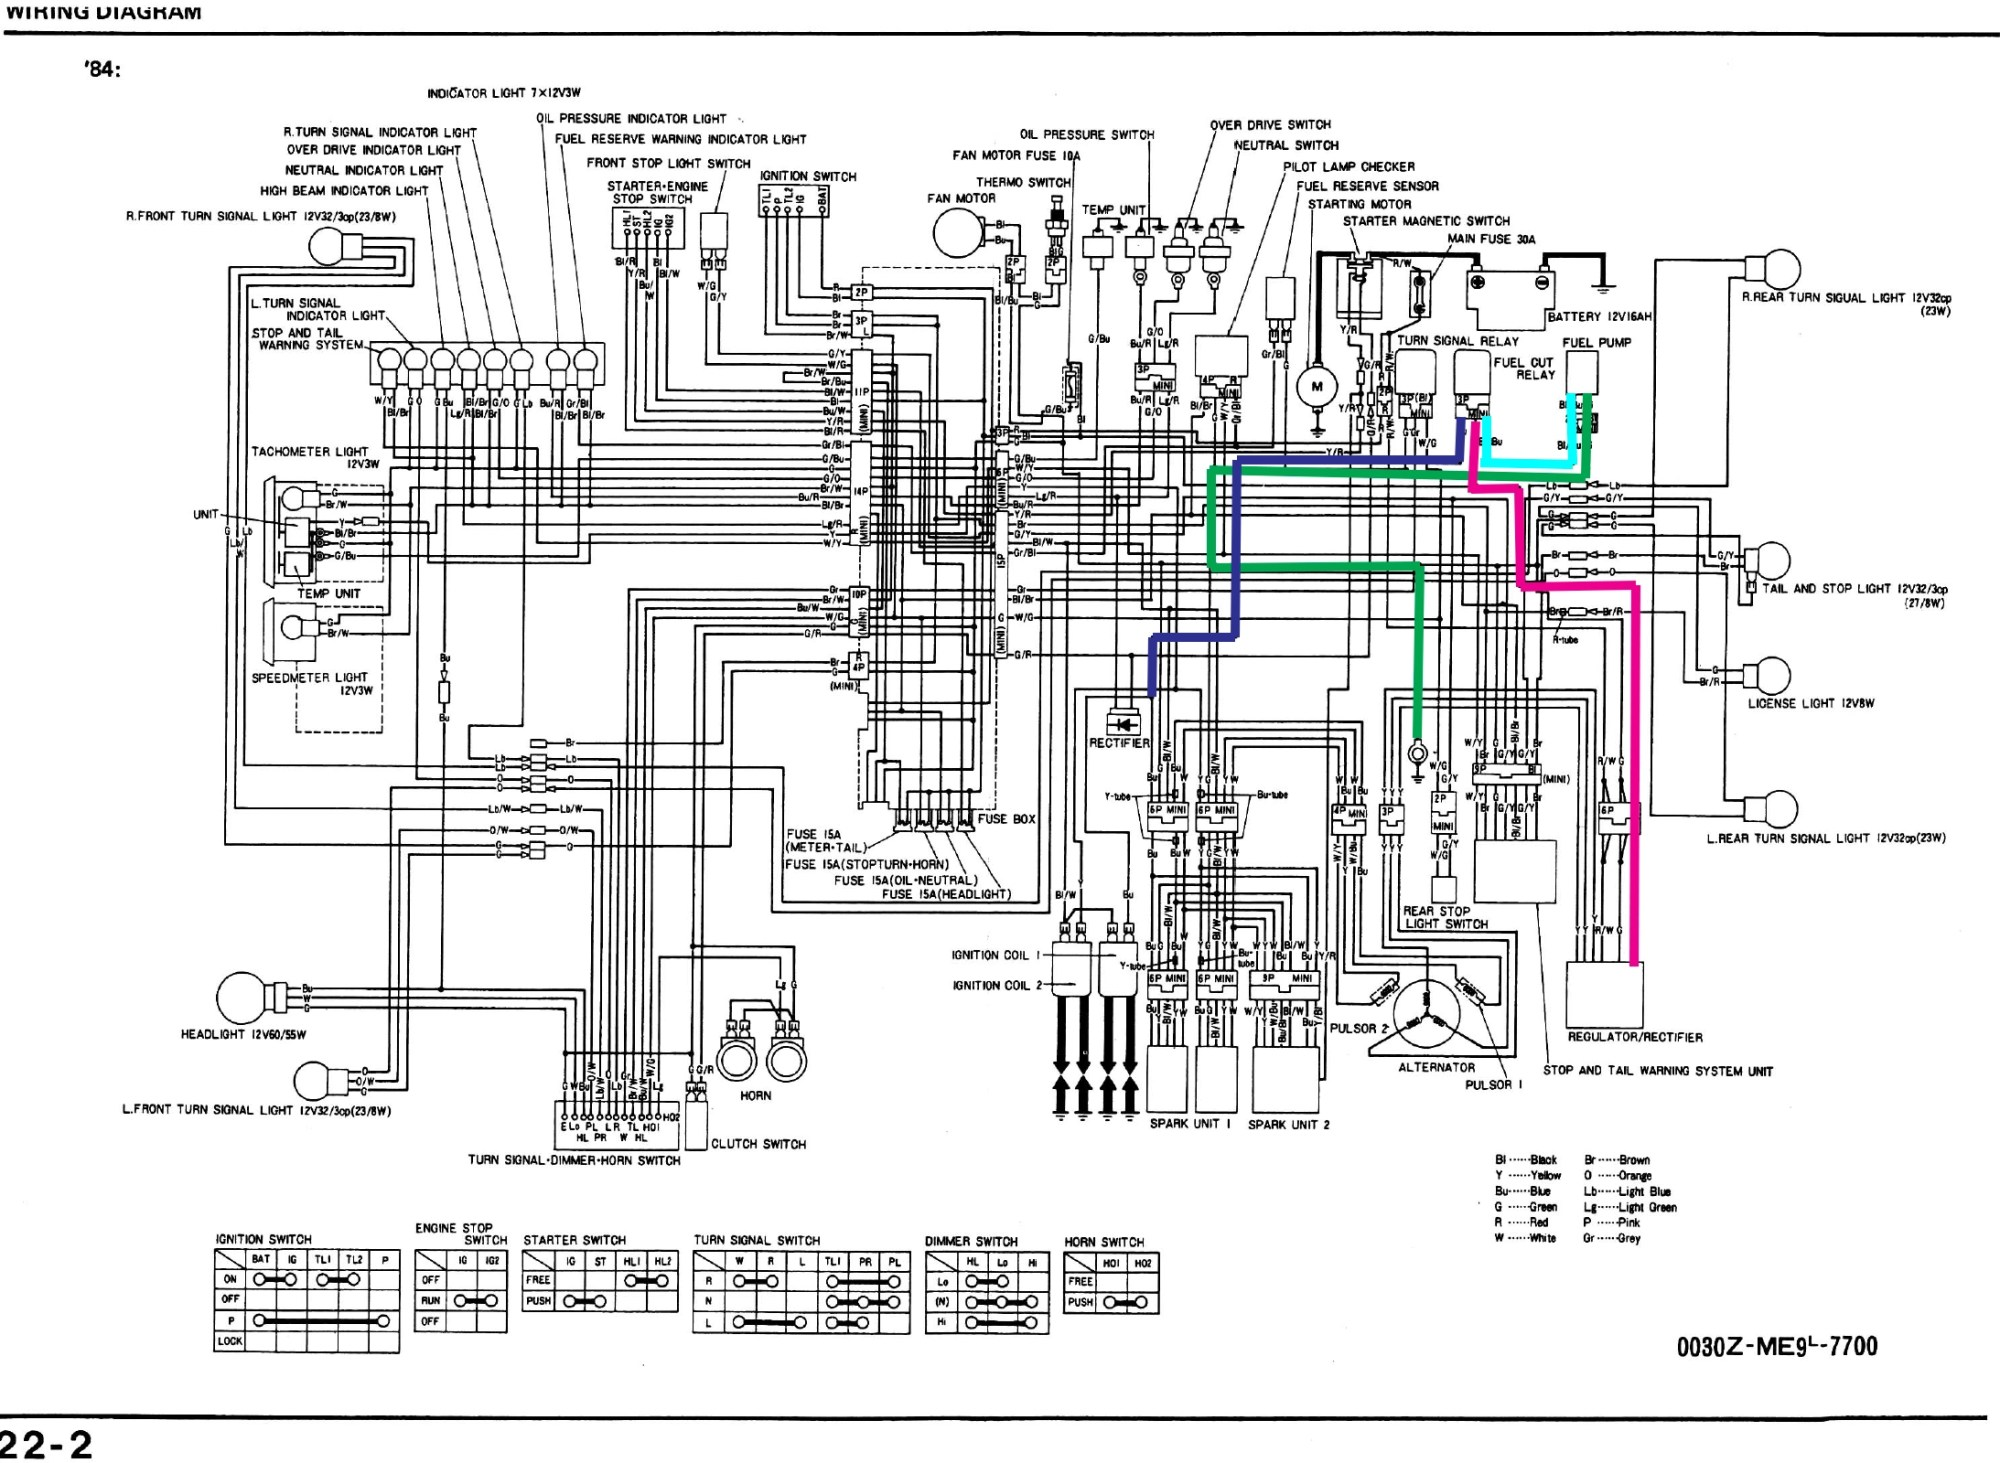 hight resolution of 1984 honda wiring diagram wiring diagram schema 1984 honda atc 200 wiring diagram 1984 honda wiring diagram